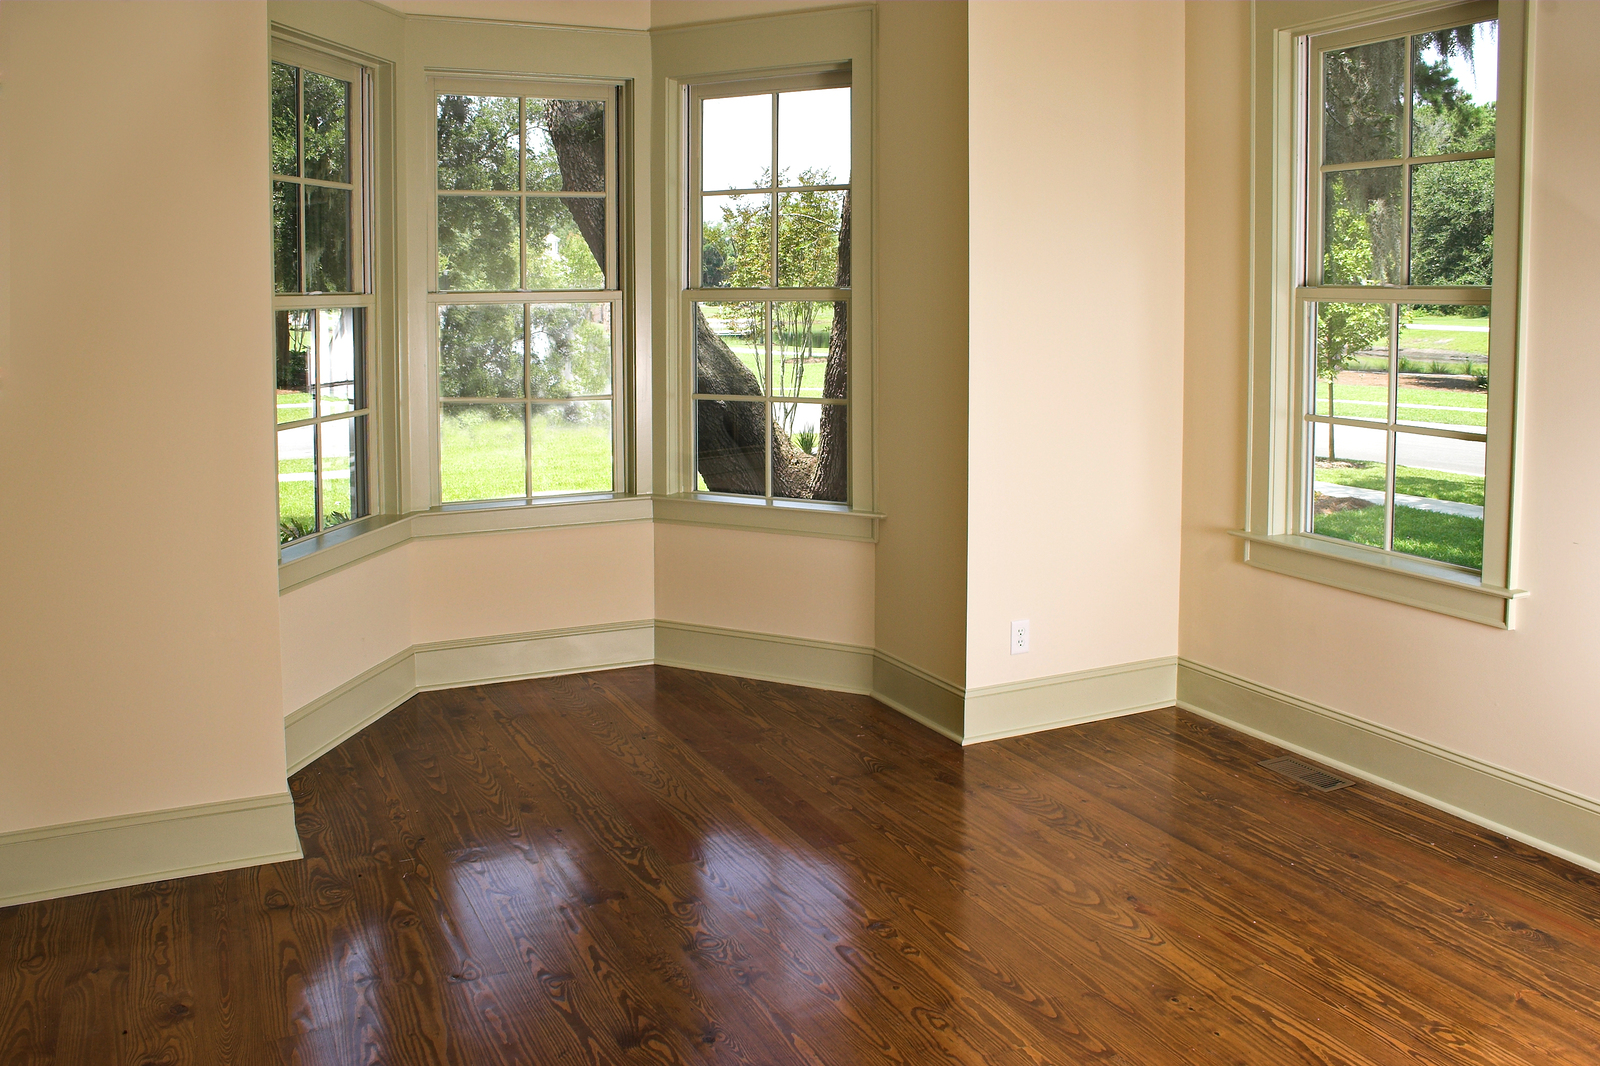 unfurnished bedroom with bay window looking over the trees